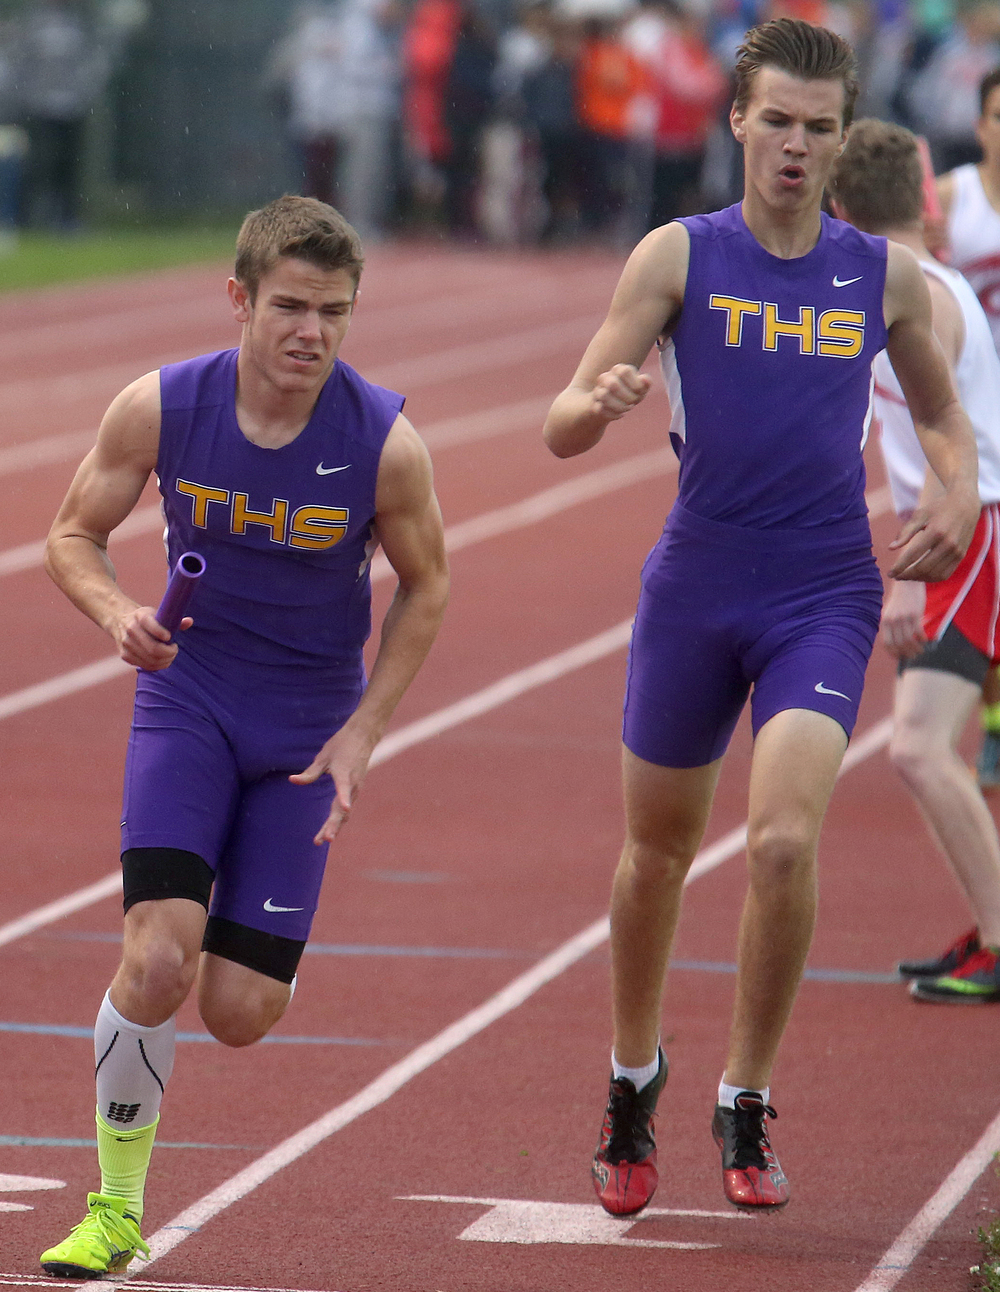 The Taylorville boys won the 4 x 800 meter relay in 8:12.46 minutes. Here, Tommy O'Brien at left finishes receiving the baton from Luke Sloan at right. David Spencer/The State Journal-Register